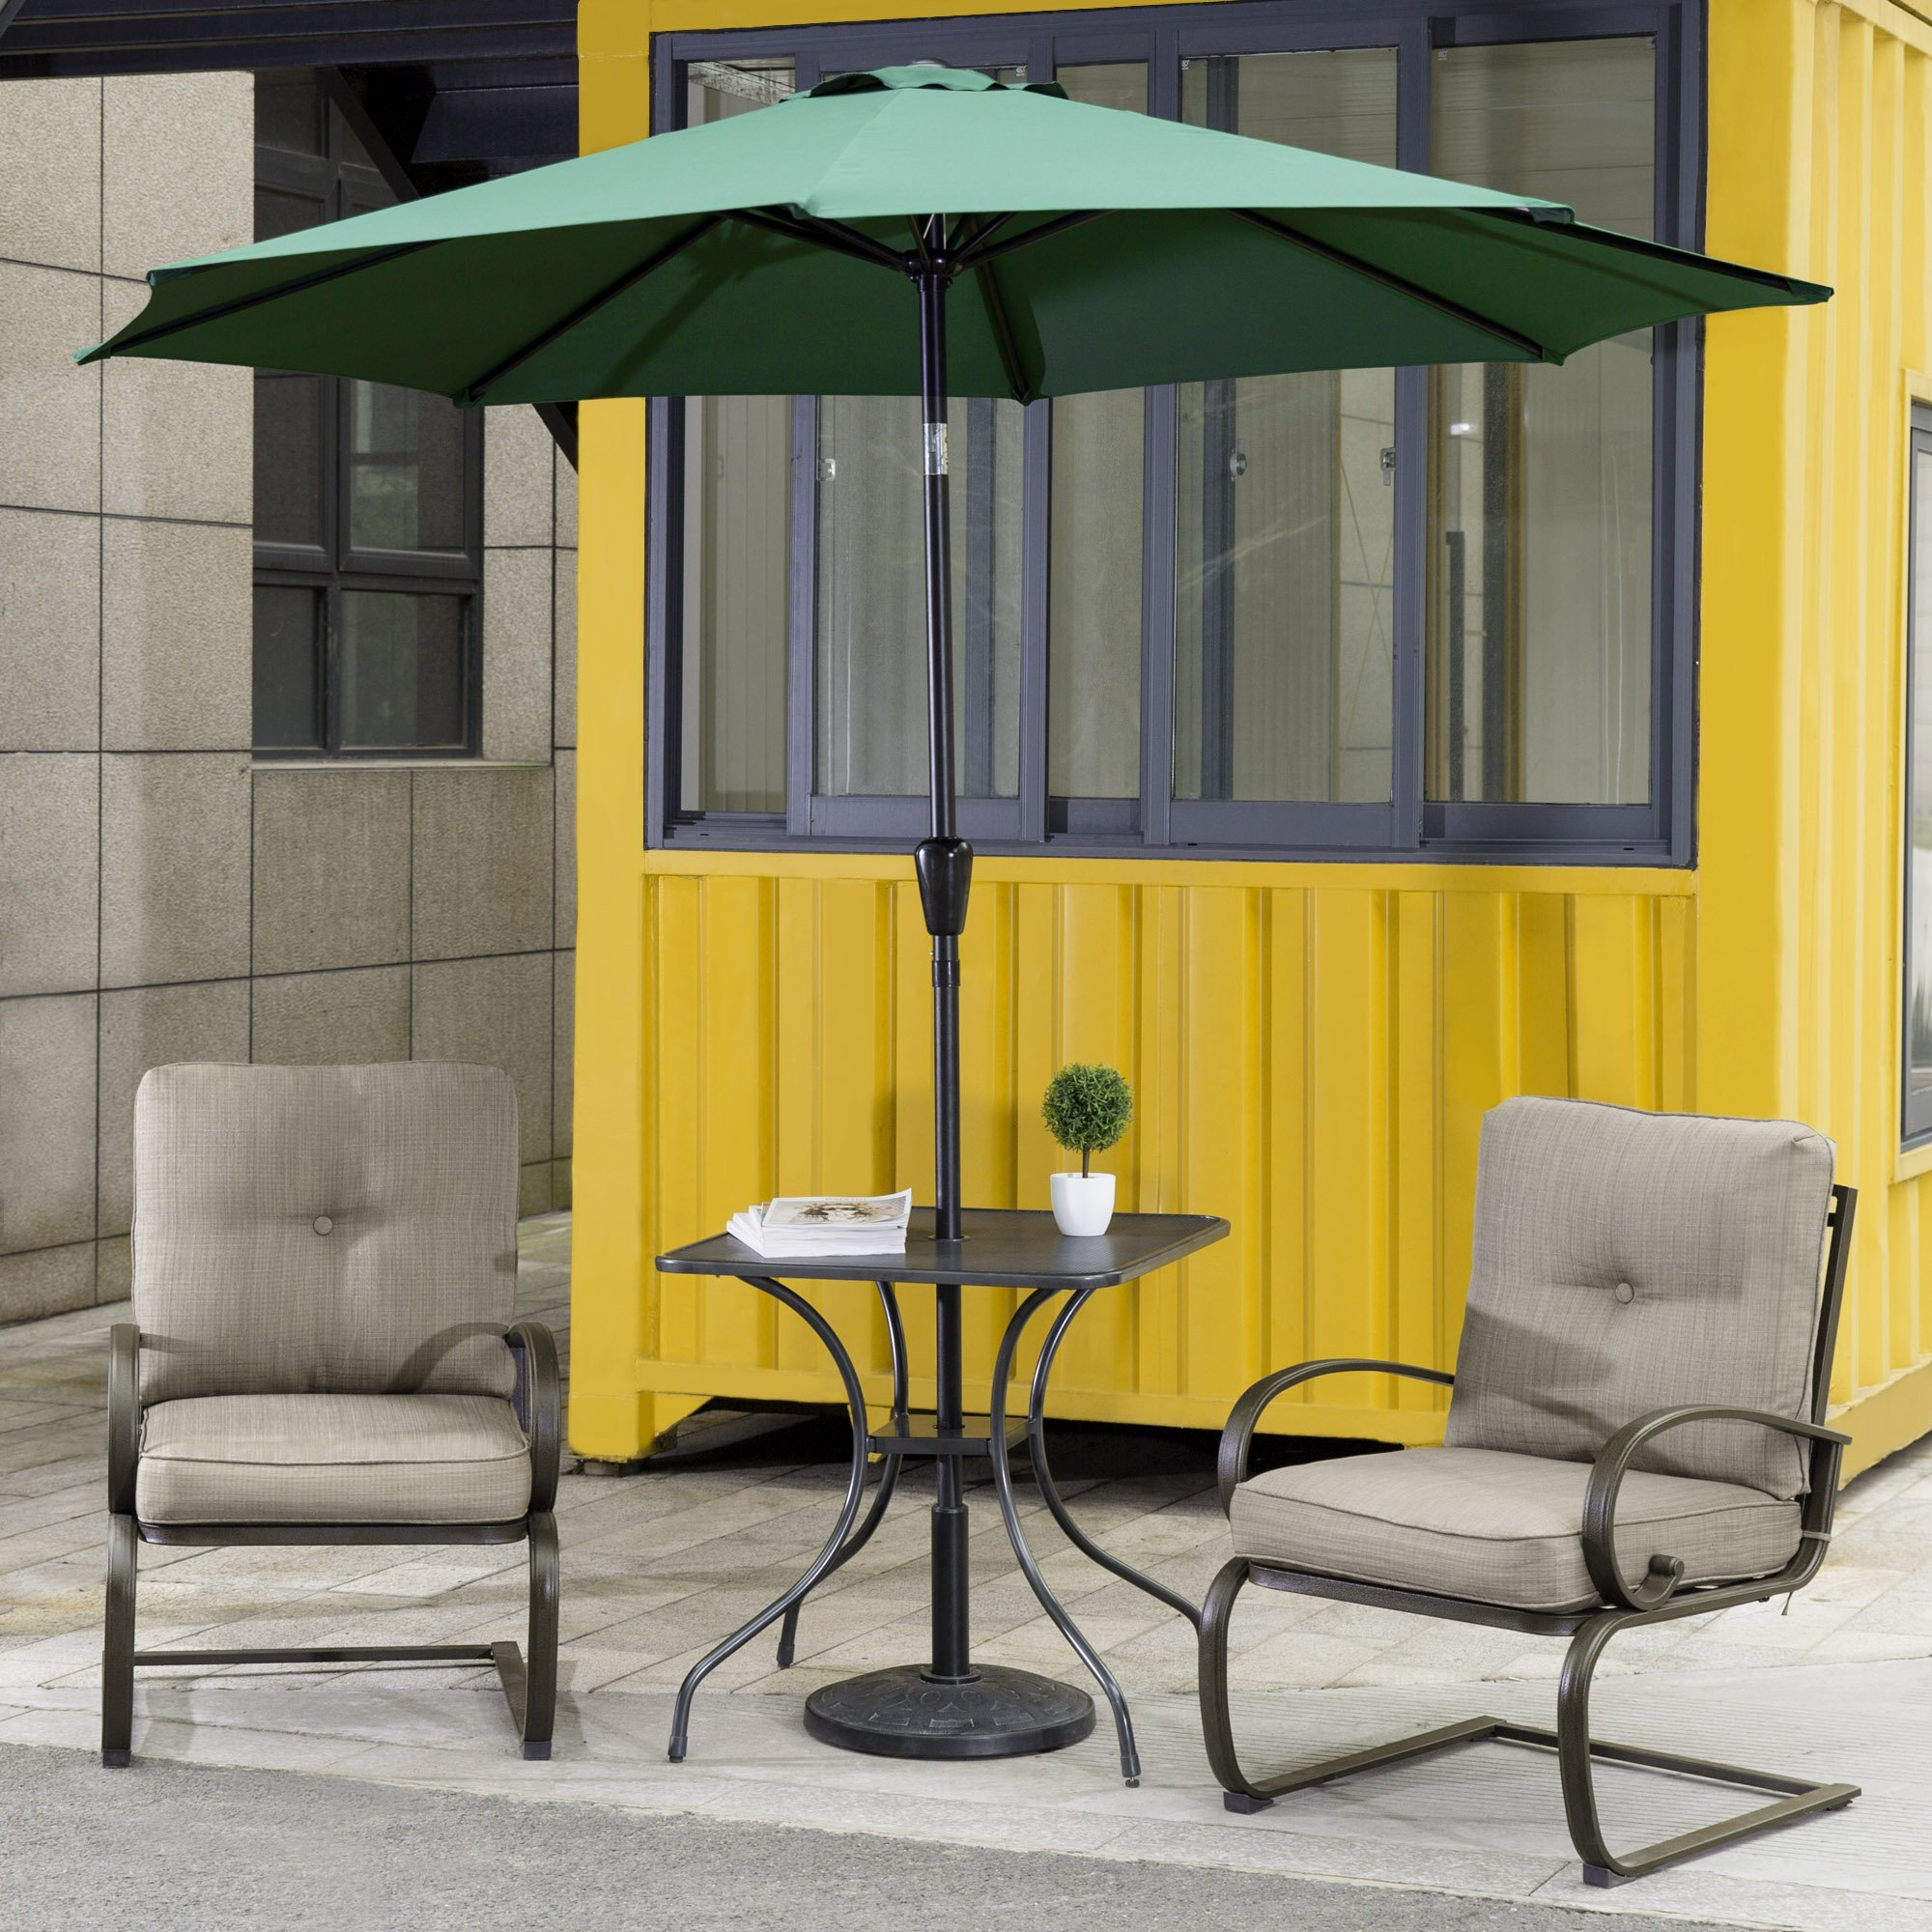 Get Quotations Cloud Mountain 4 Piece Patio Bistro Set Outdoor Umbrella Furniture Wrought Iron